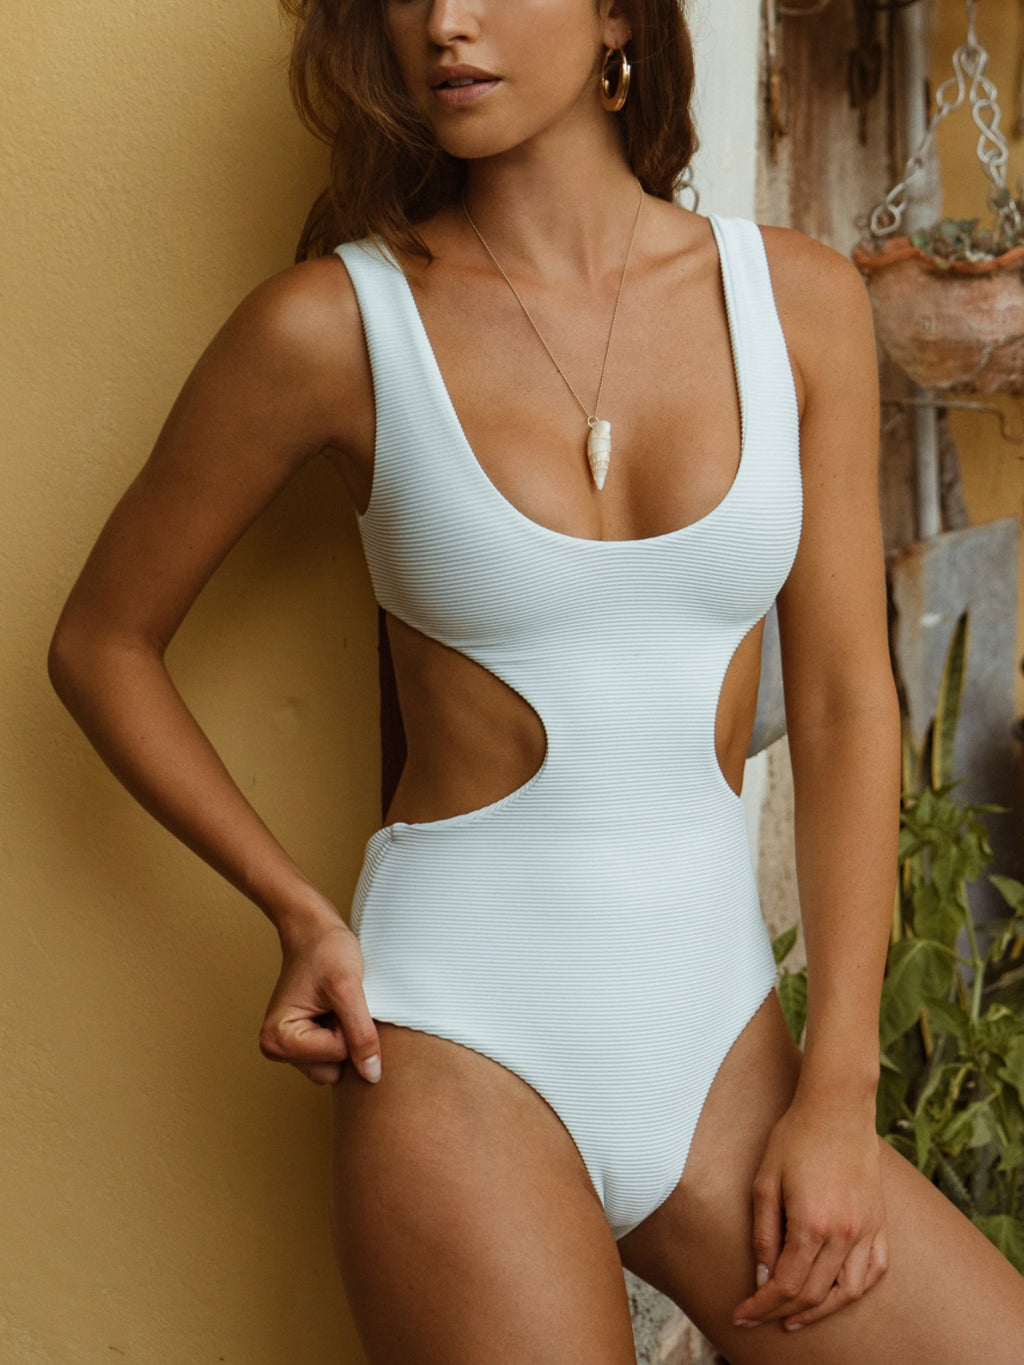 The Citrine Swim Nolita One Piece is a light blue color and is ribbed throughout. This one piece bikini has side cut-outs and an adjustable back tie.